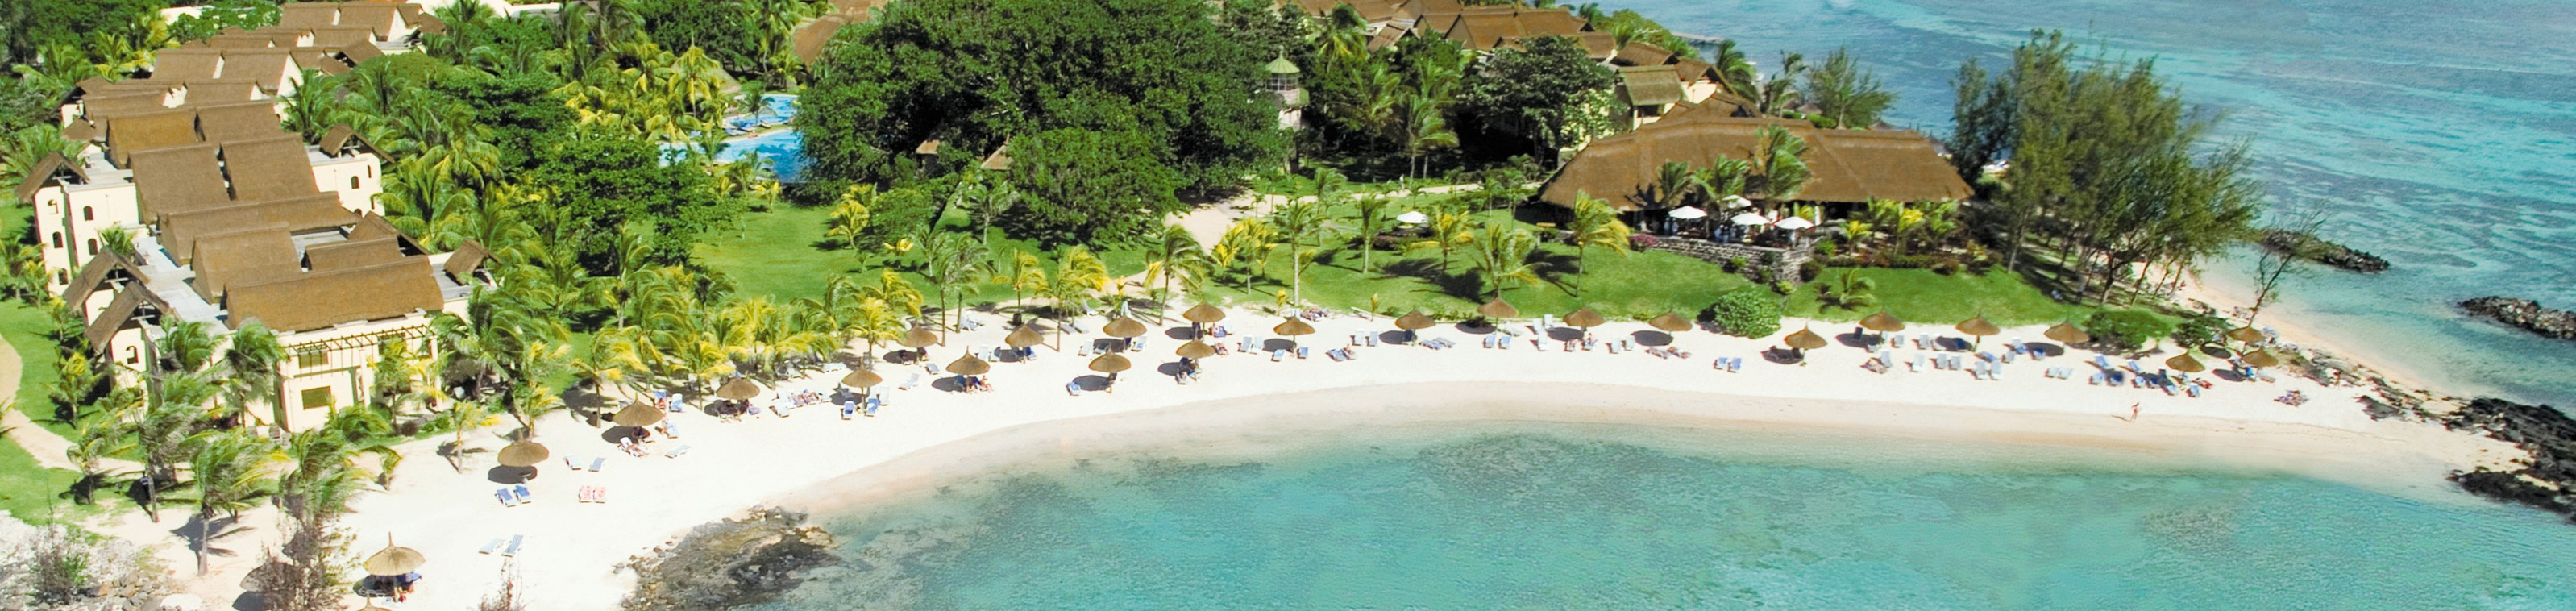 Canonnier Beachcomber Golf Resort & Spa sur l'île Maurice